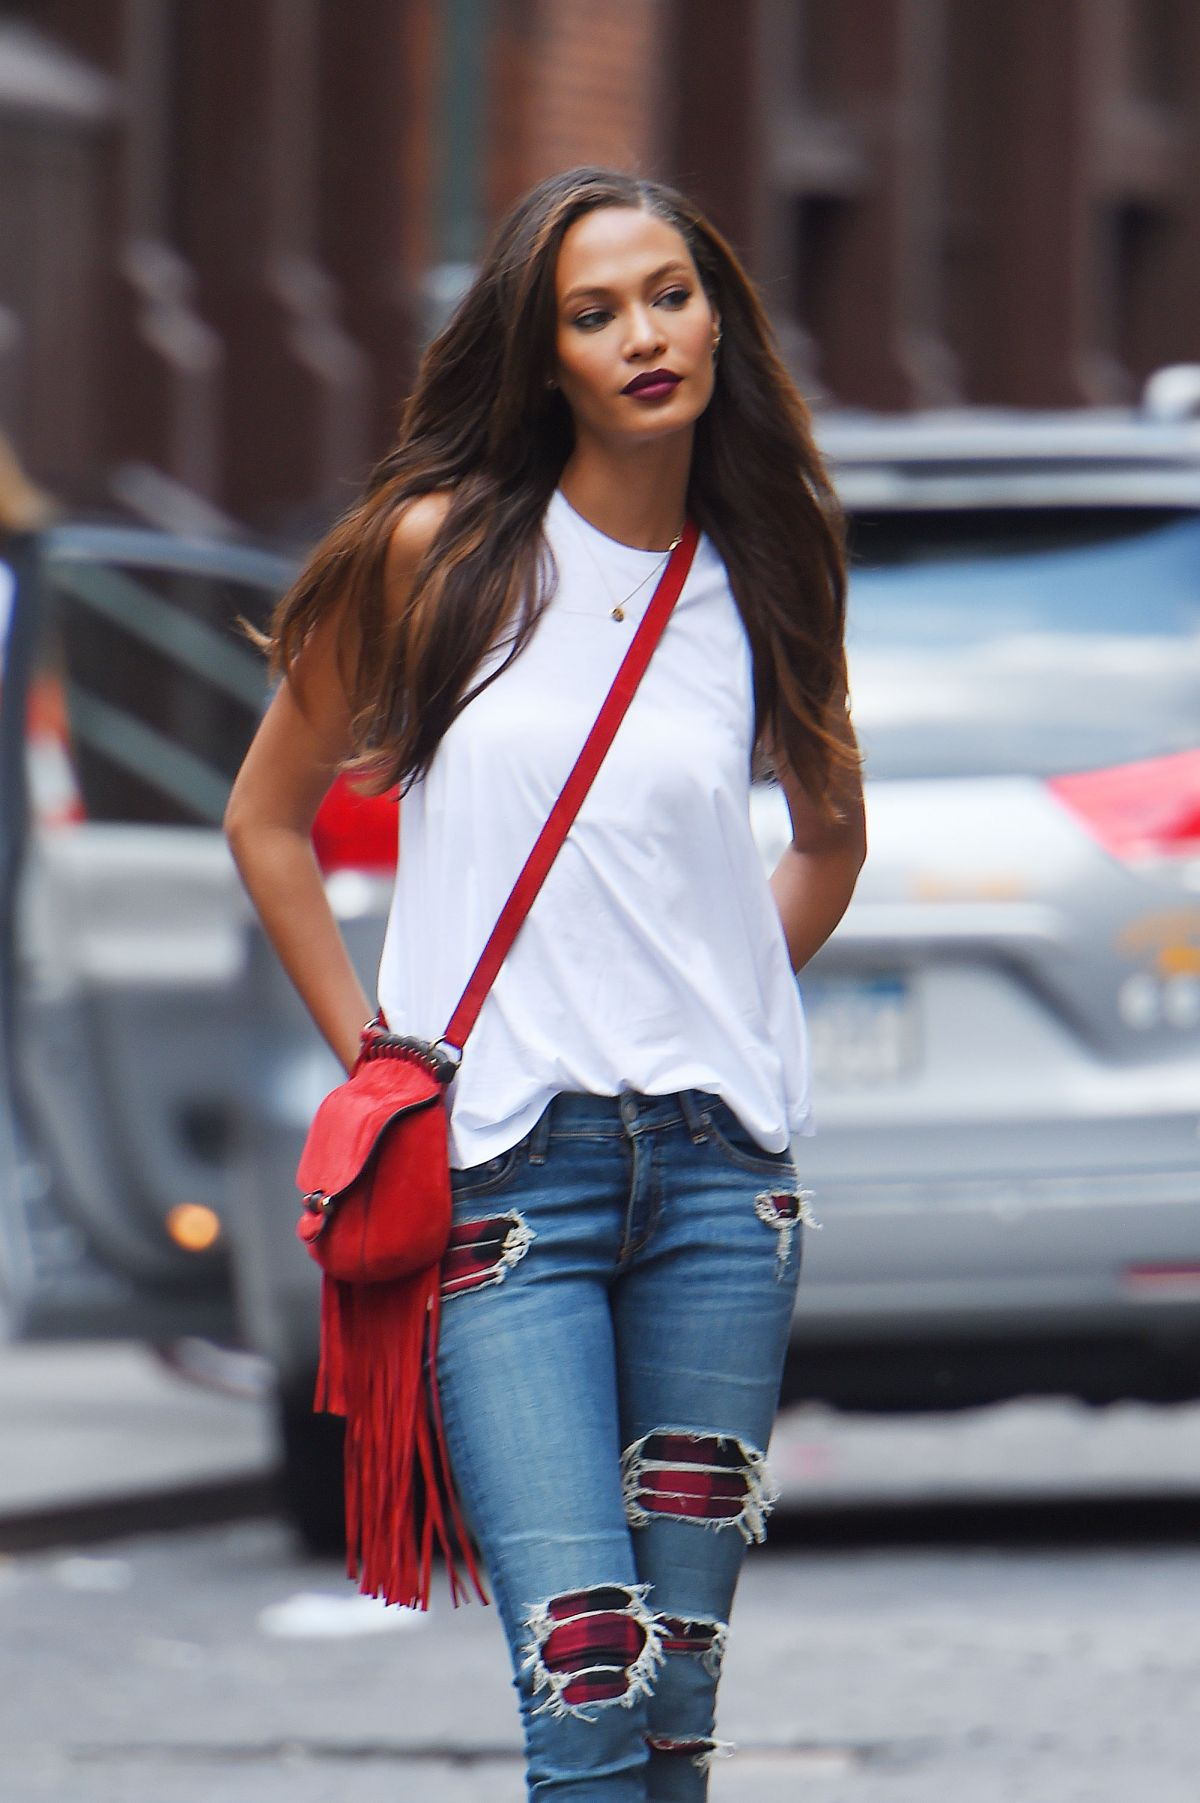 JOAN SMALLS at Impromptu Photoshoot in New York